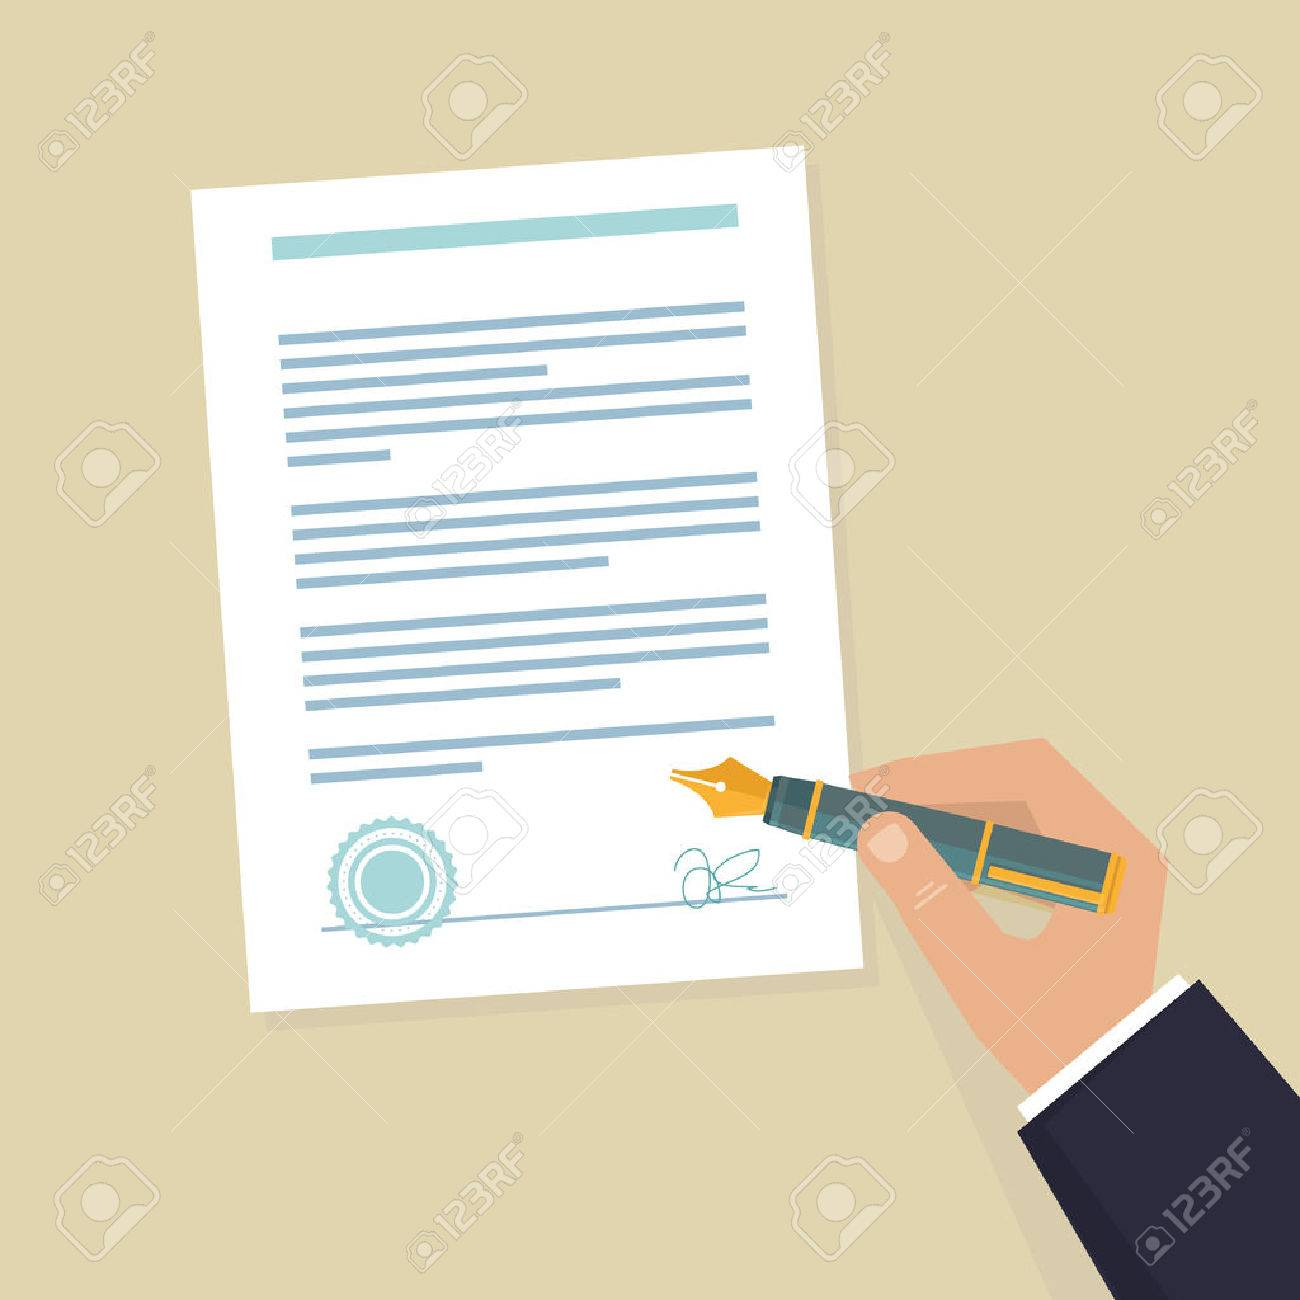 Vector agreement icon - flat illustration - hand signing contract on white paper - 27316502